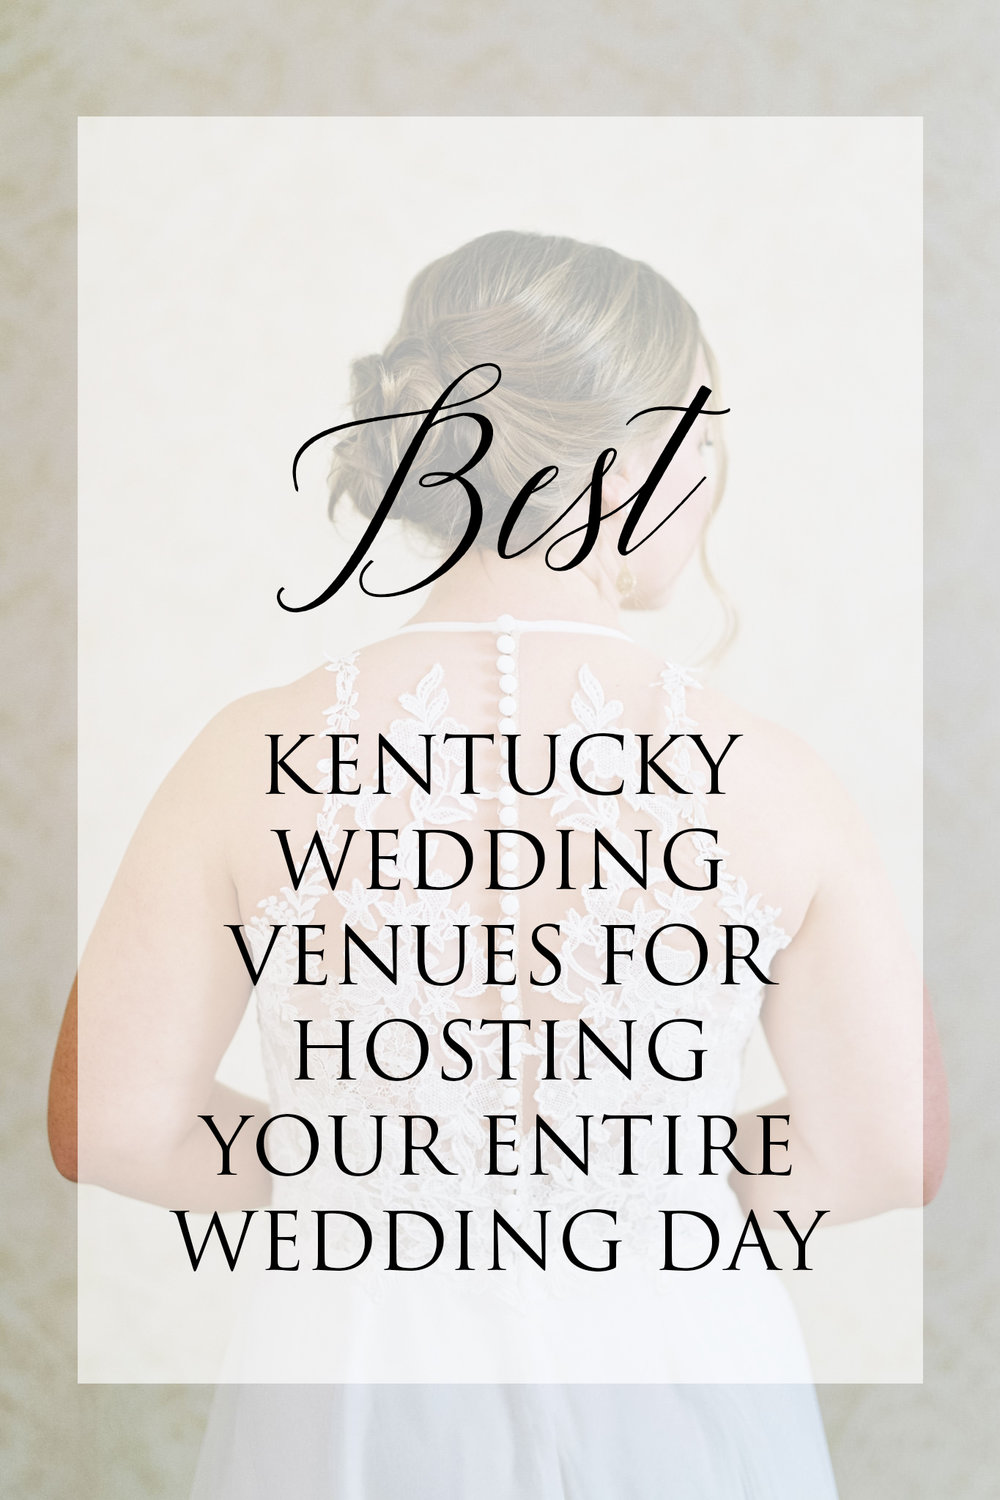 Best Kentucky Wedding Venues for Hosting Your Entire Wedding Day